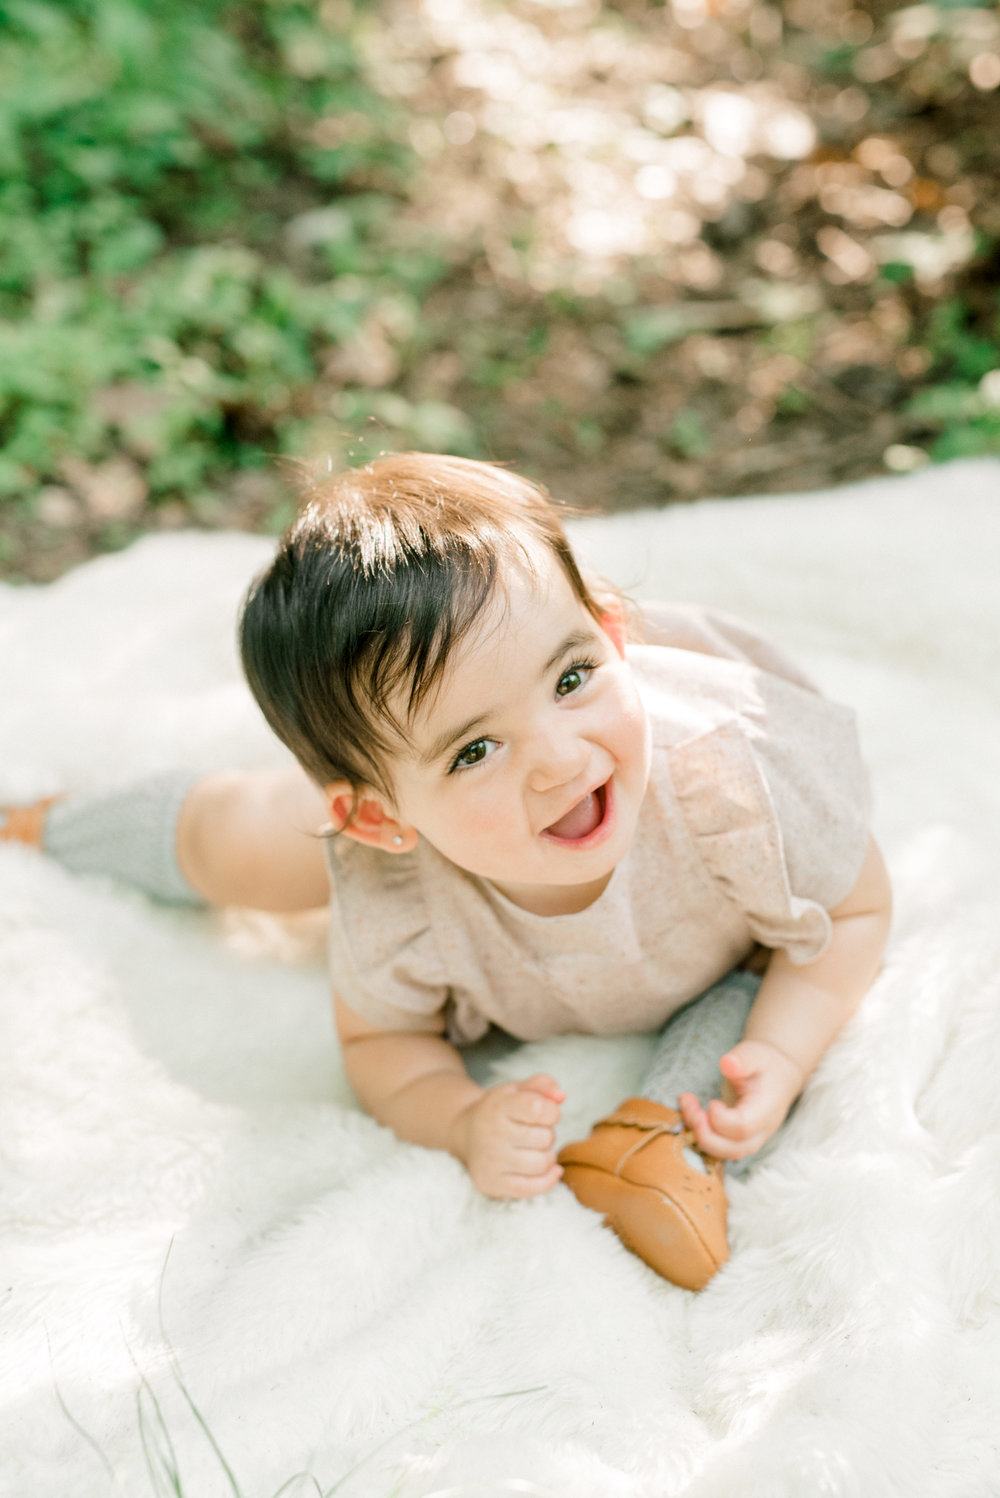 Happy baby family portrait session in Philadelphia, Pennsylvania